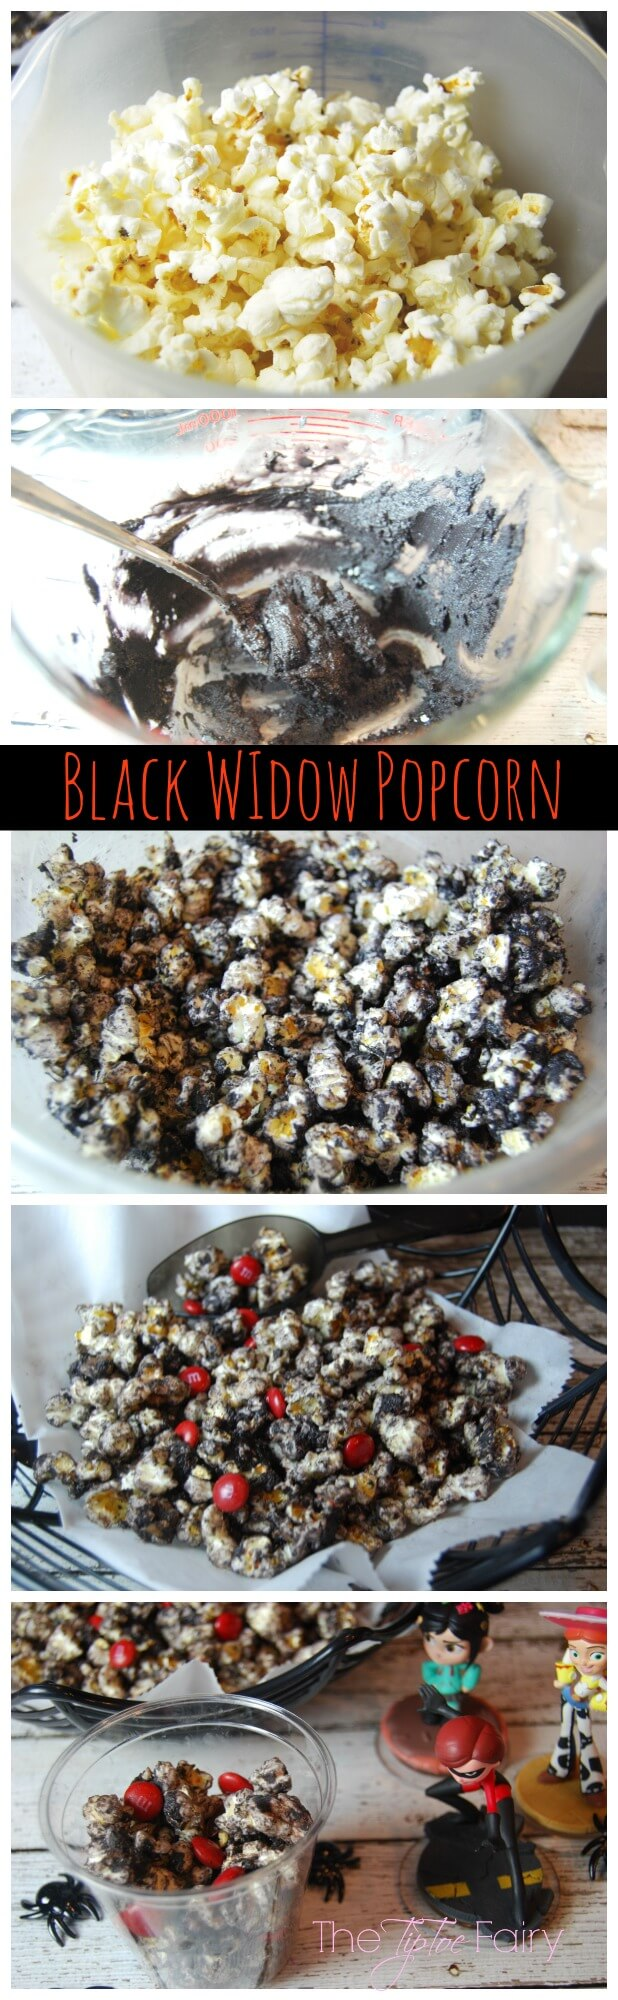 Black Widow Popcorn | The TipToe Fairy #InfinityHeroes #CollectiveBias #shop #popcornrecipes #cakebatterpopcorn #popcorntreat #blackwidow #marvel